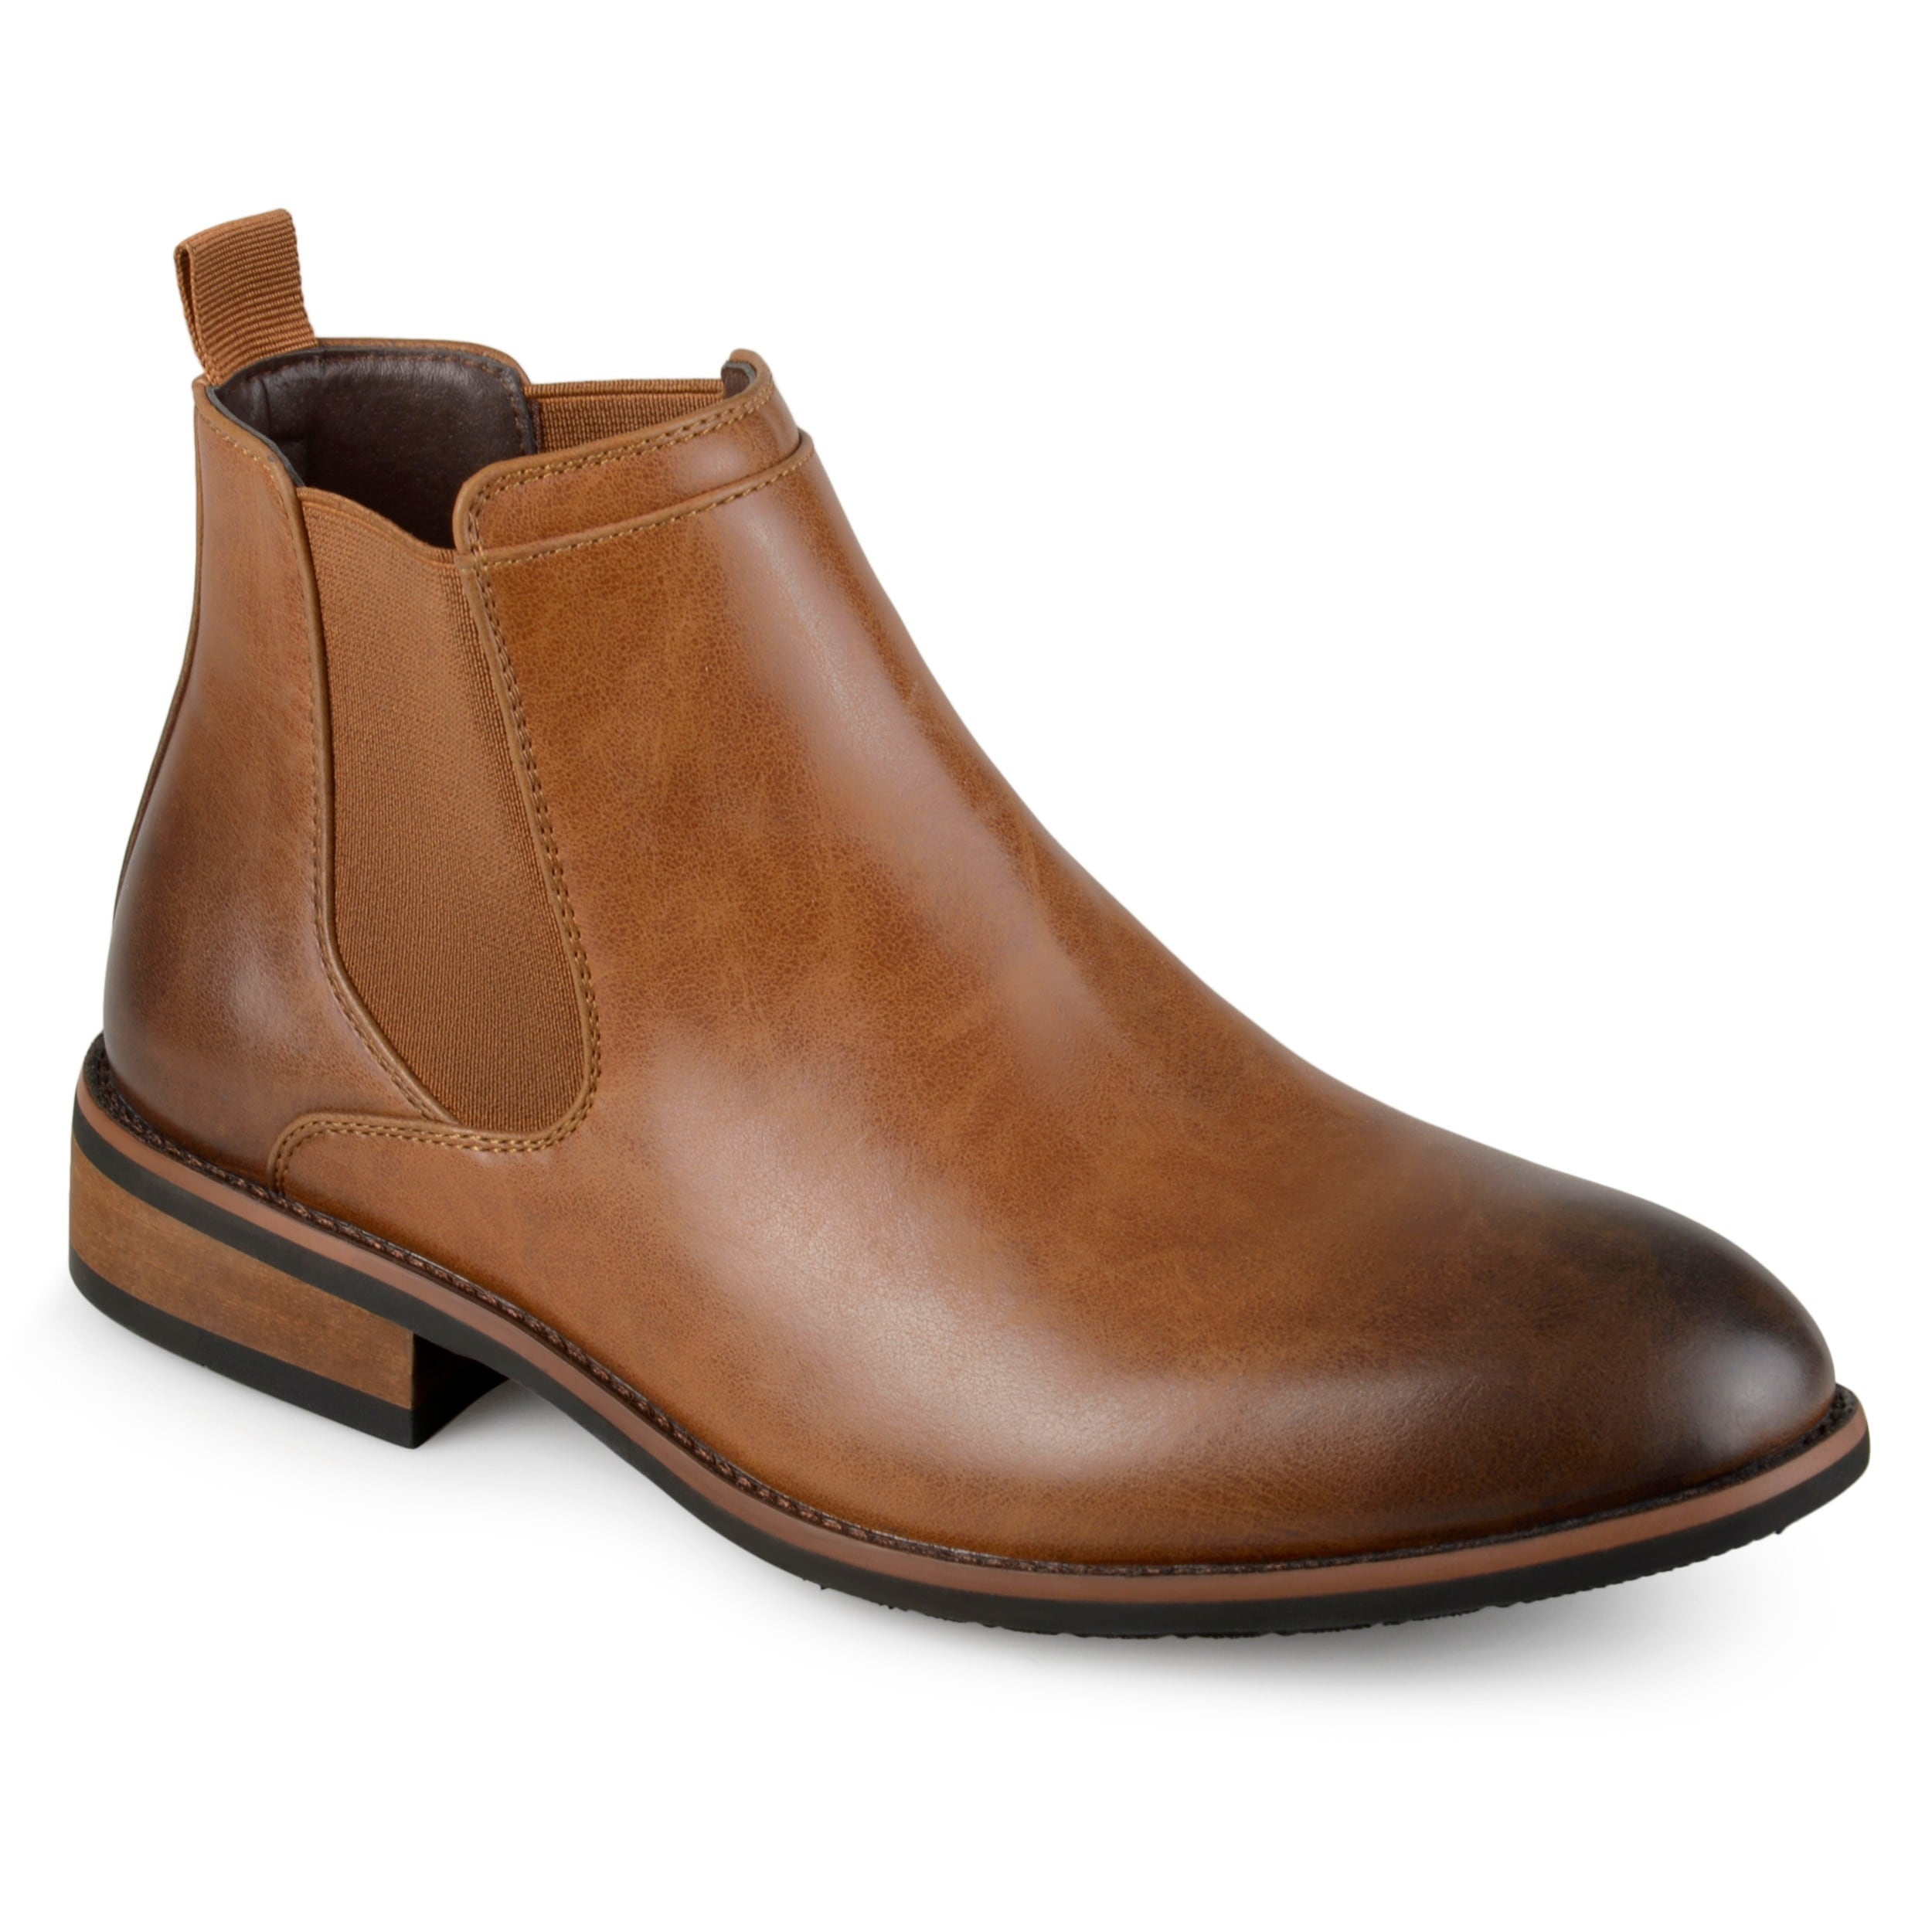 Men S Landon Round Toe High Top Chelsea Dress Boots On Free Shipping Today 12706210